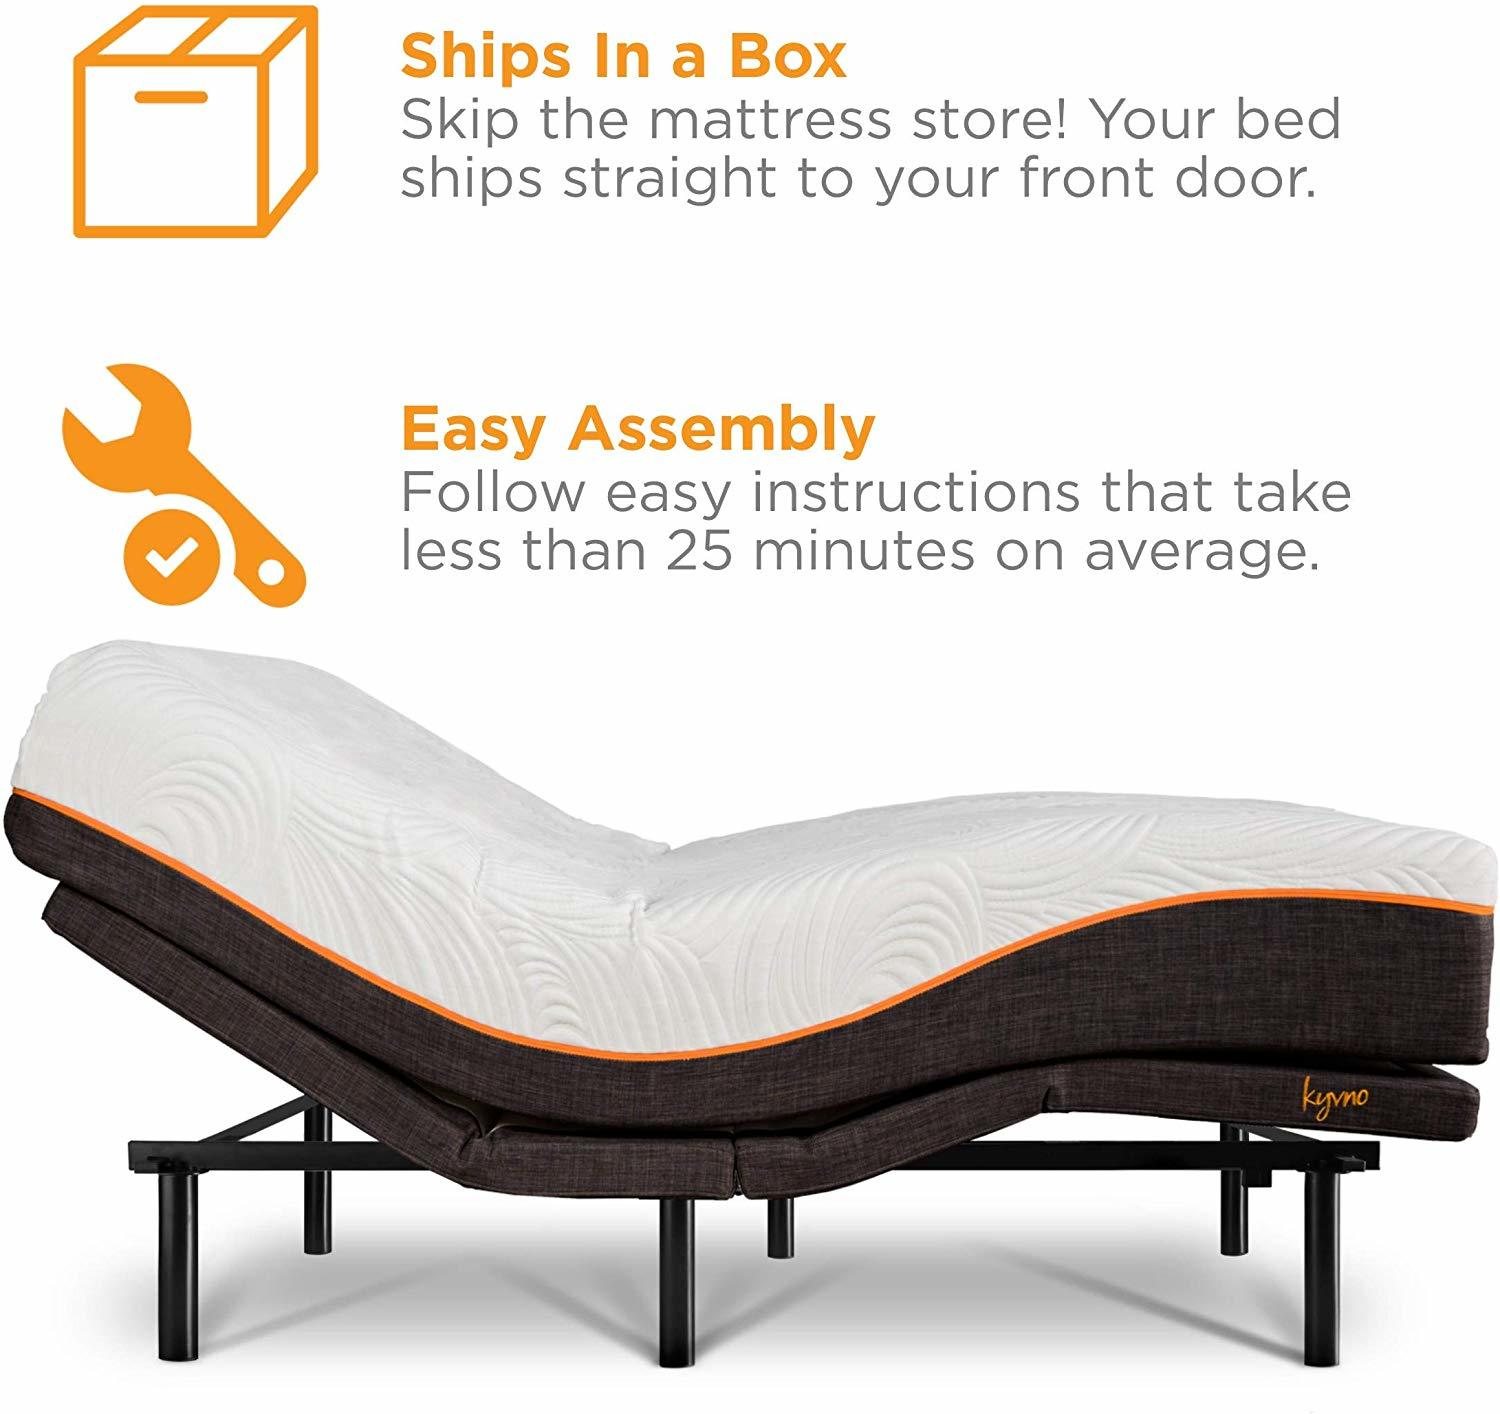 Kyvno Adjustable Bed Reviews - Assembly